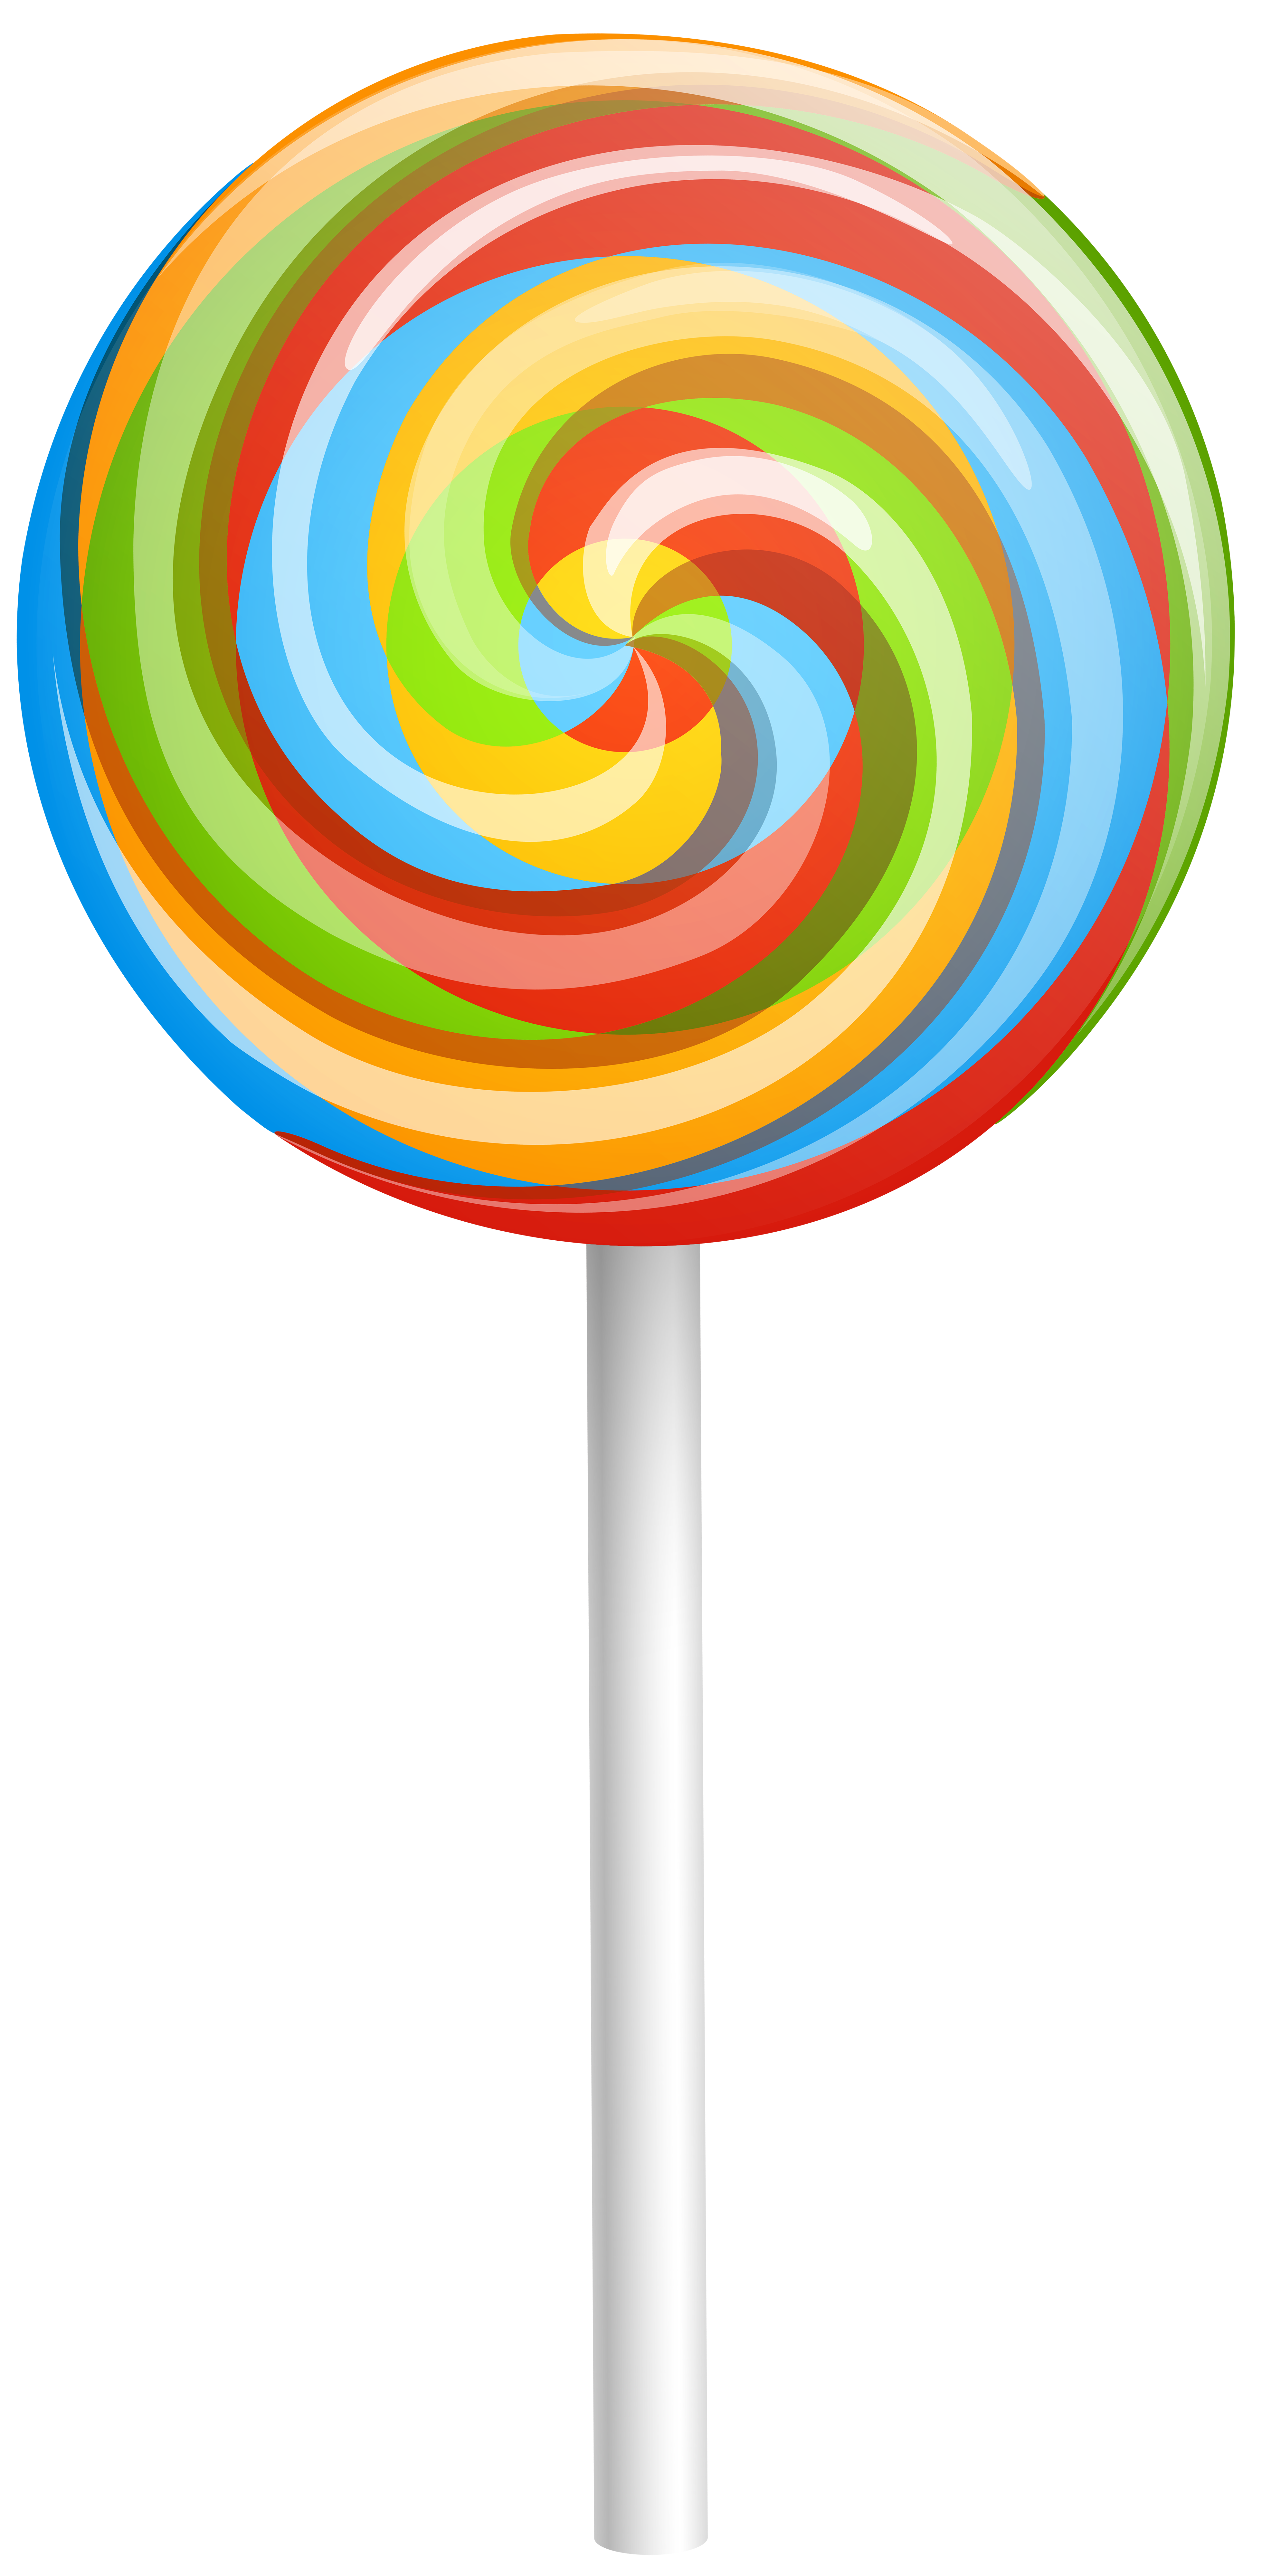 Swirl Candy Cliparts Free Download Clip Art - carwad.net